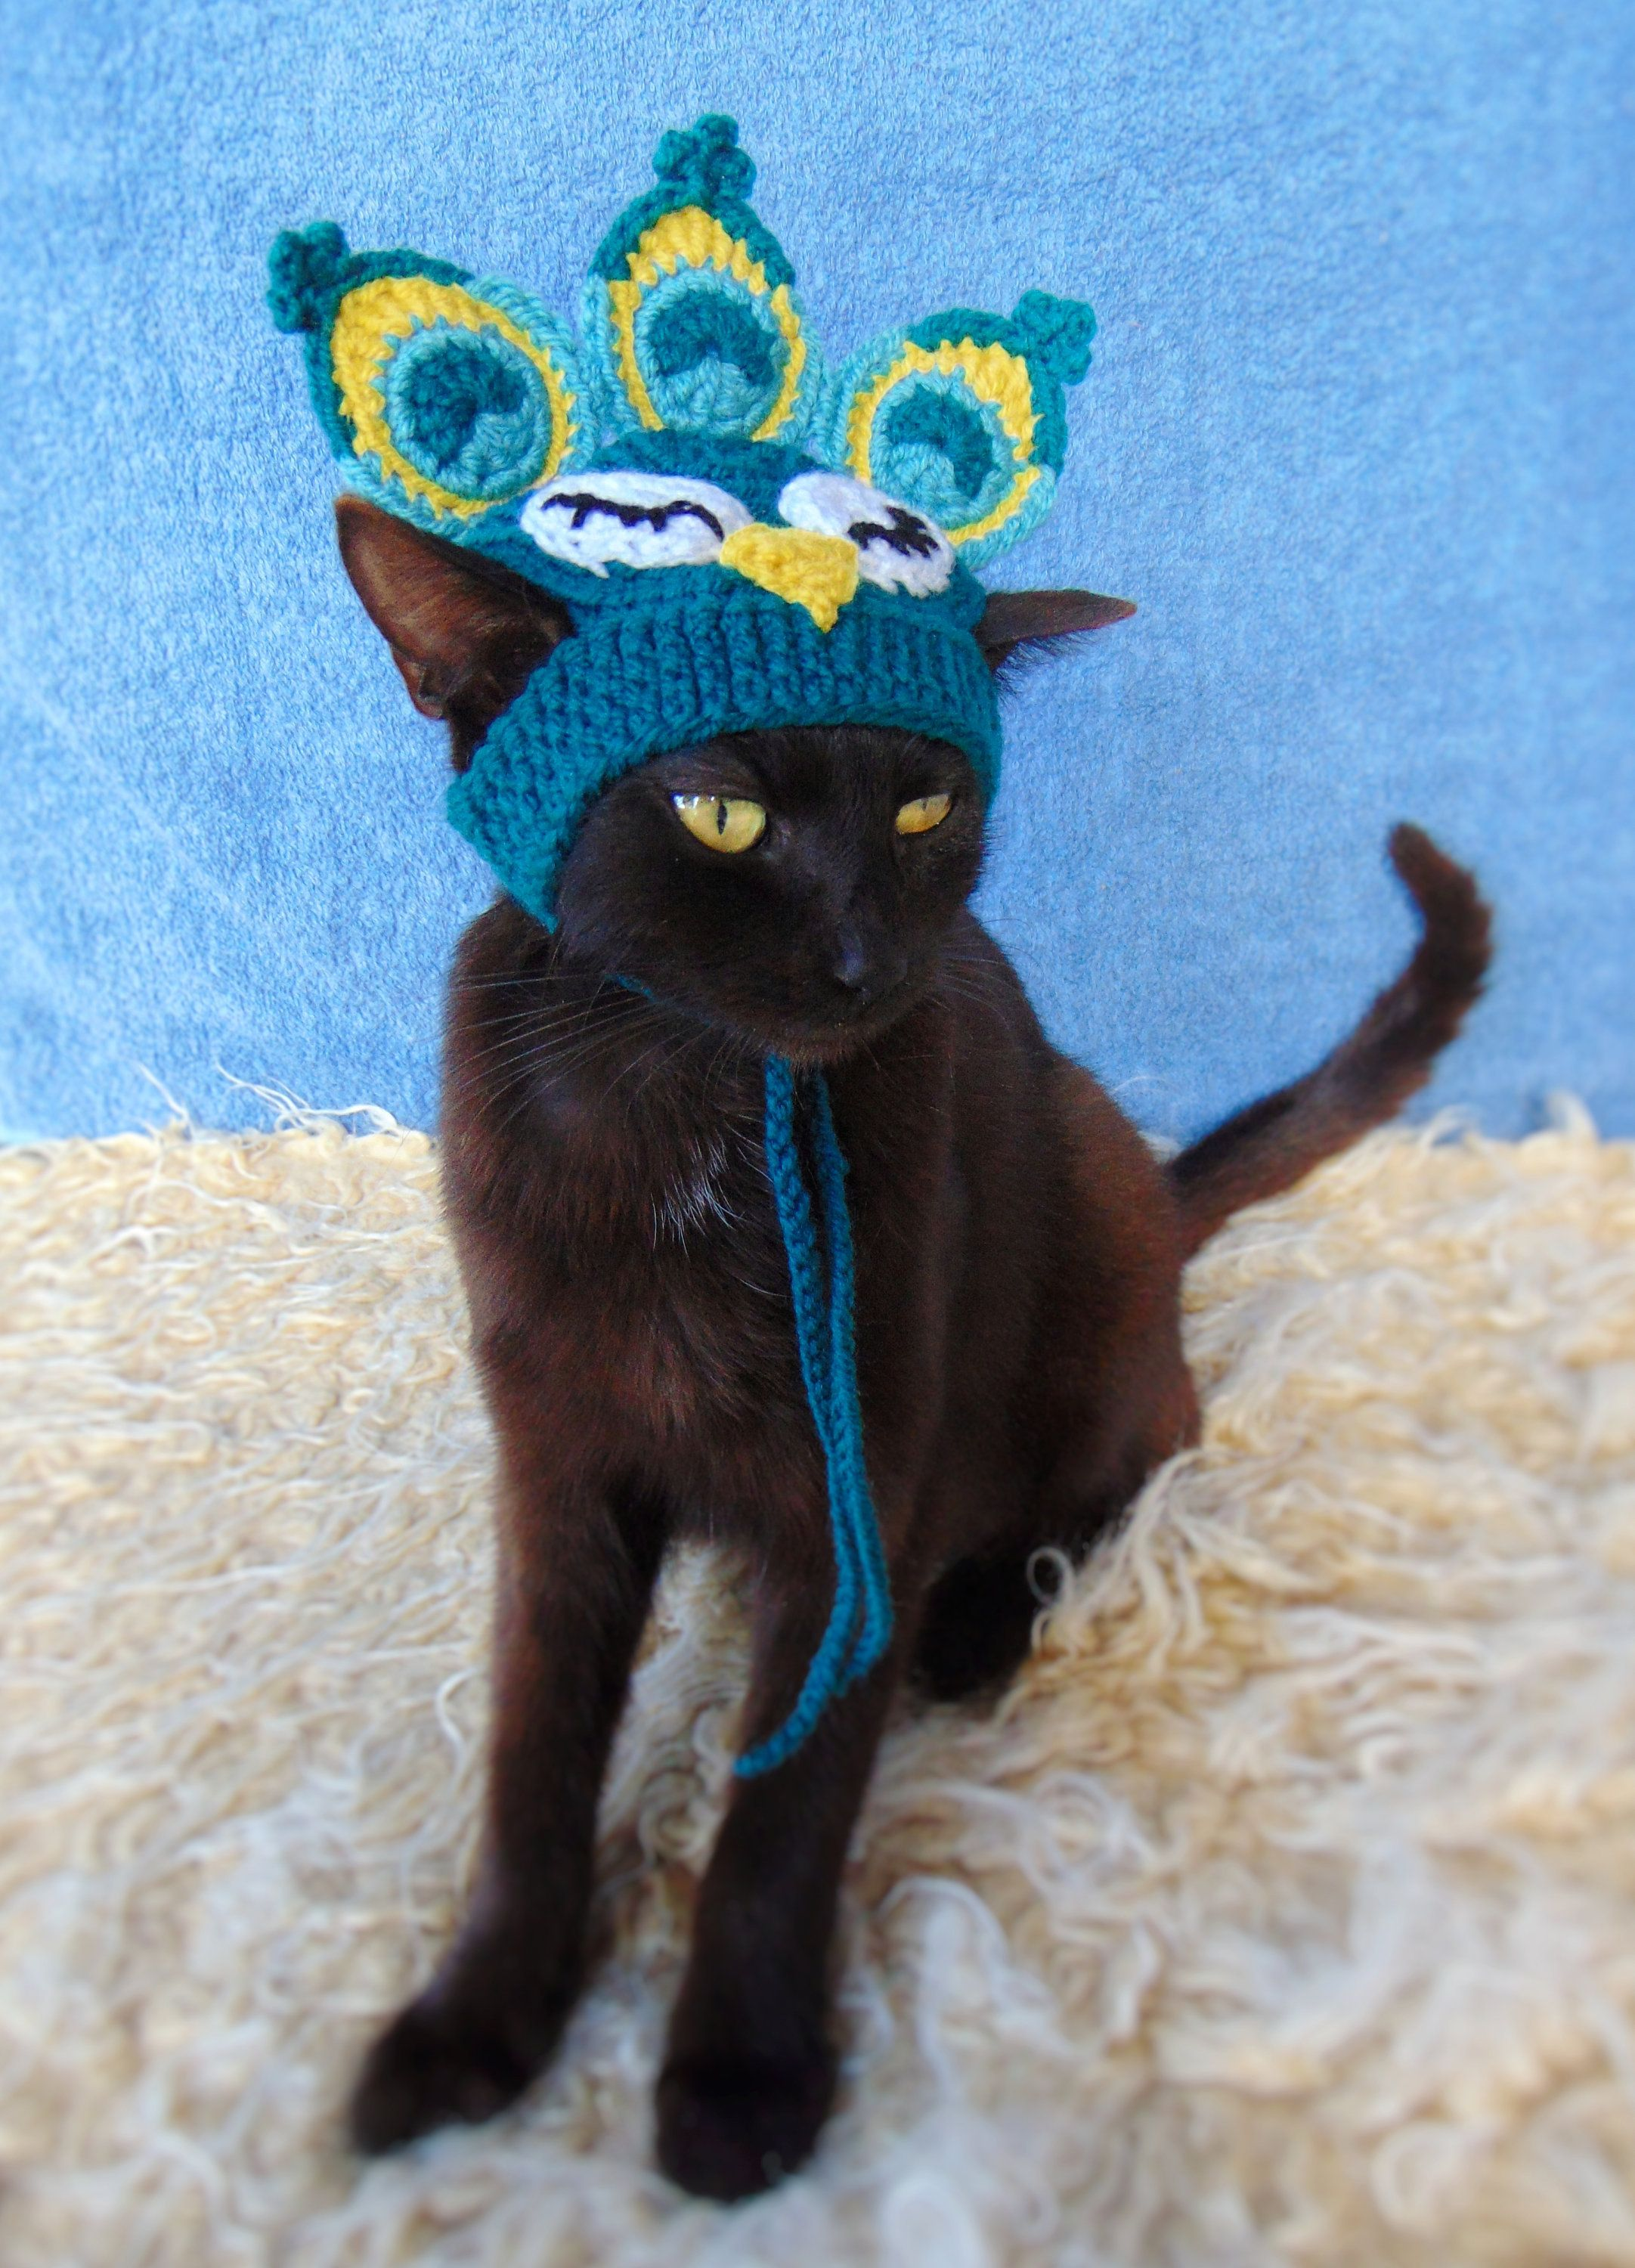 Peacock hat for cat, Peacock pet costume, Kitten accessories, Hats for cats, Gift for cat lover